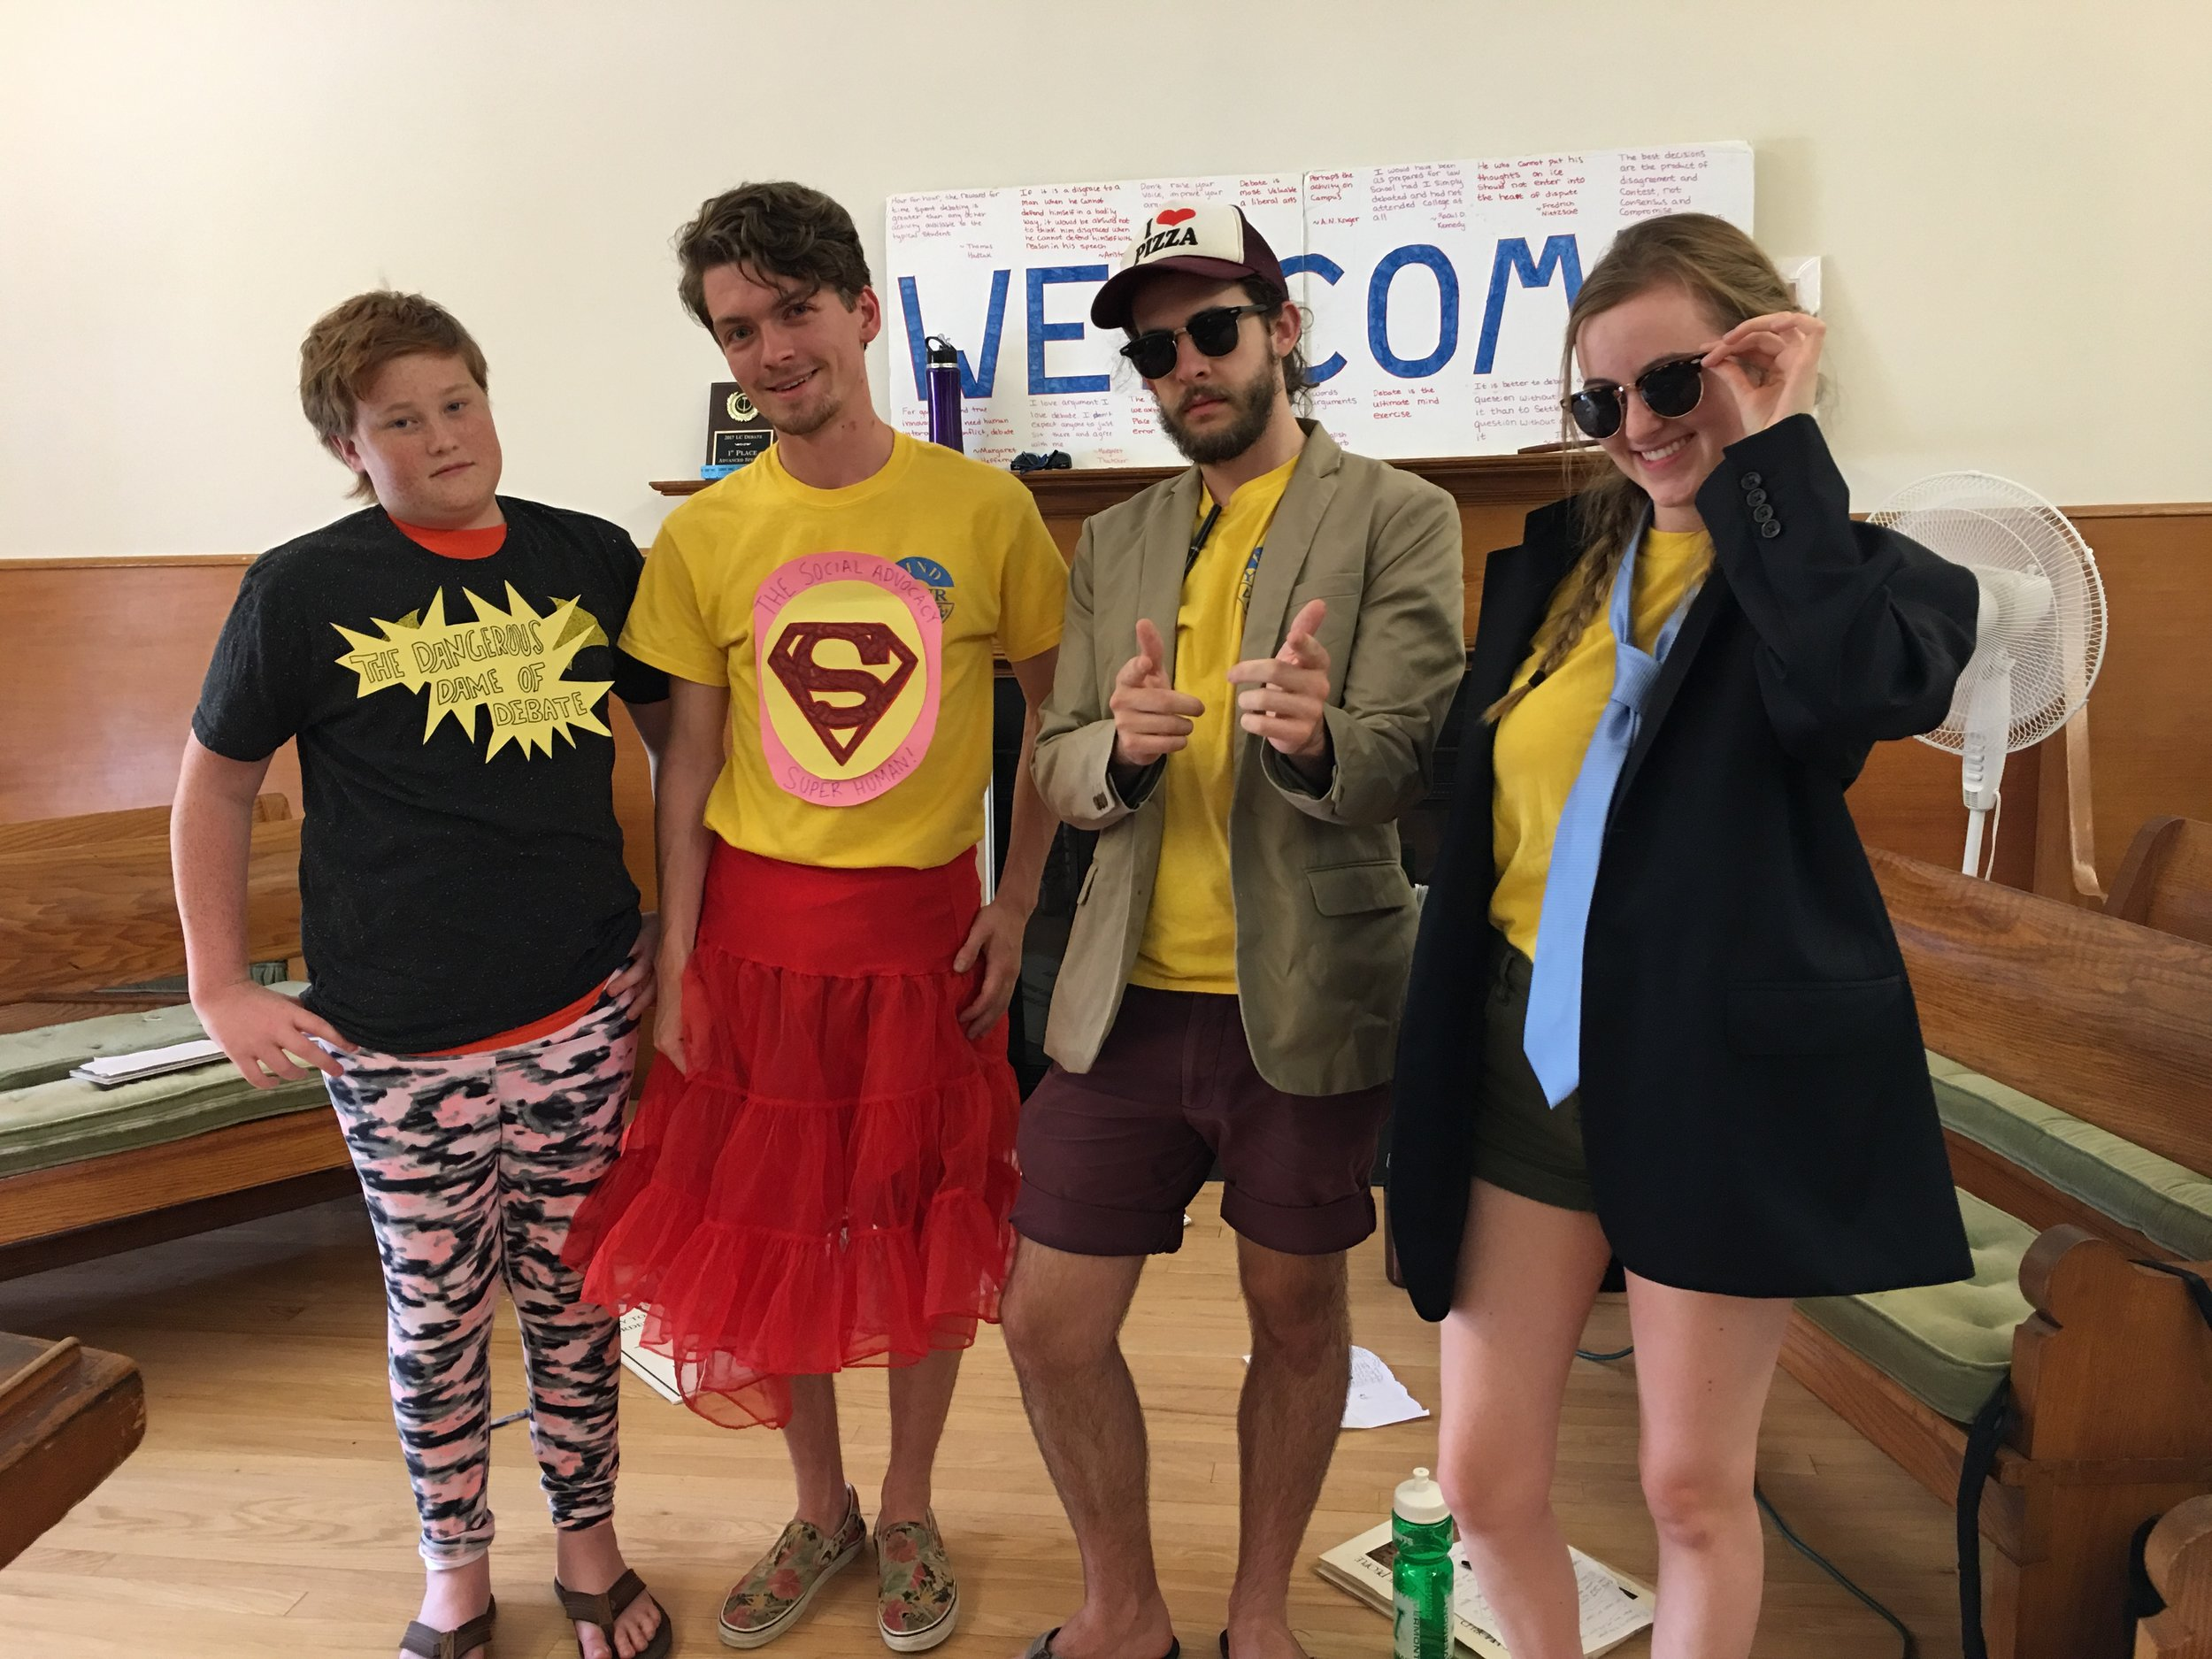 Day Camp in West Hartford, CT - (ages 8-18)Choose between Debate summer camp, Model United Nations summer camp, or mix it up; one week of Model UN and two weeks of Debate!WEEK 1 June 15-19WEEK 2 June 22-26WEEK 3 June 29- July 3